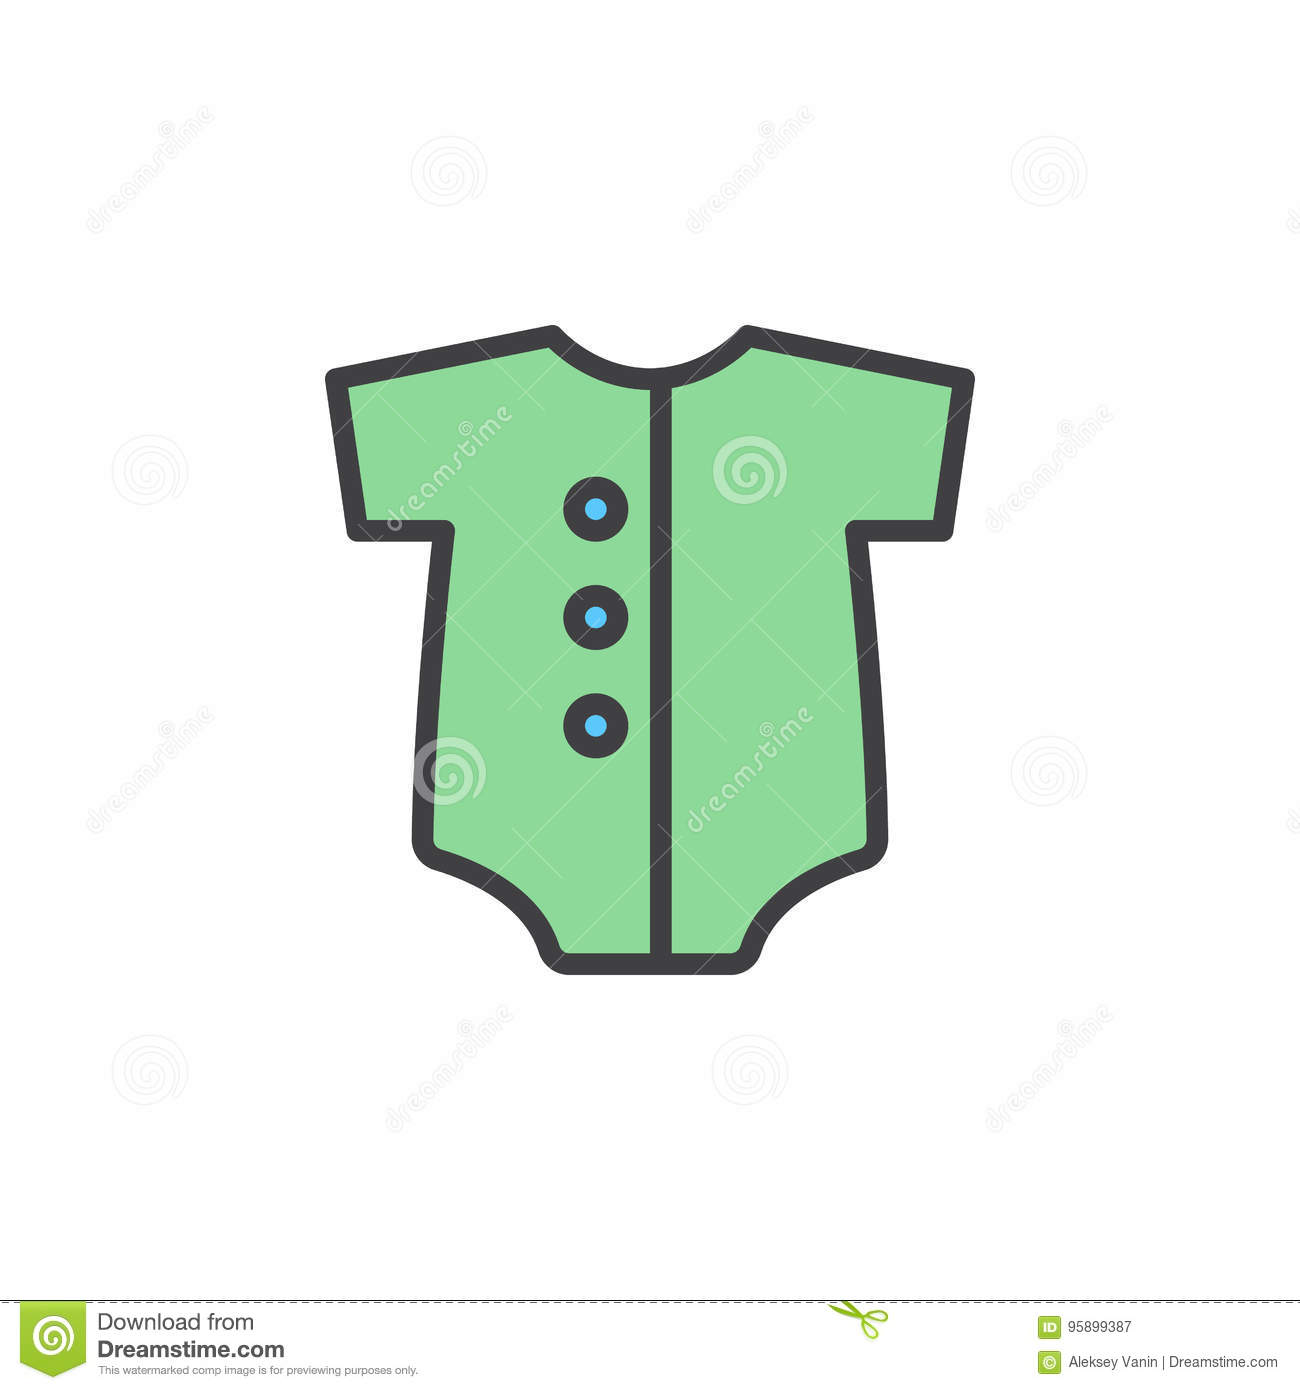 d85afb8f639 Baby Romper Filled Outline Icon